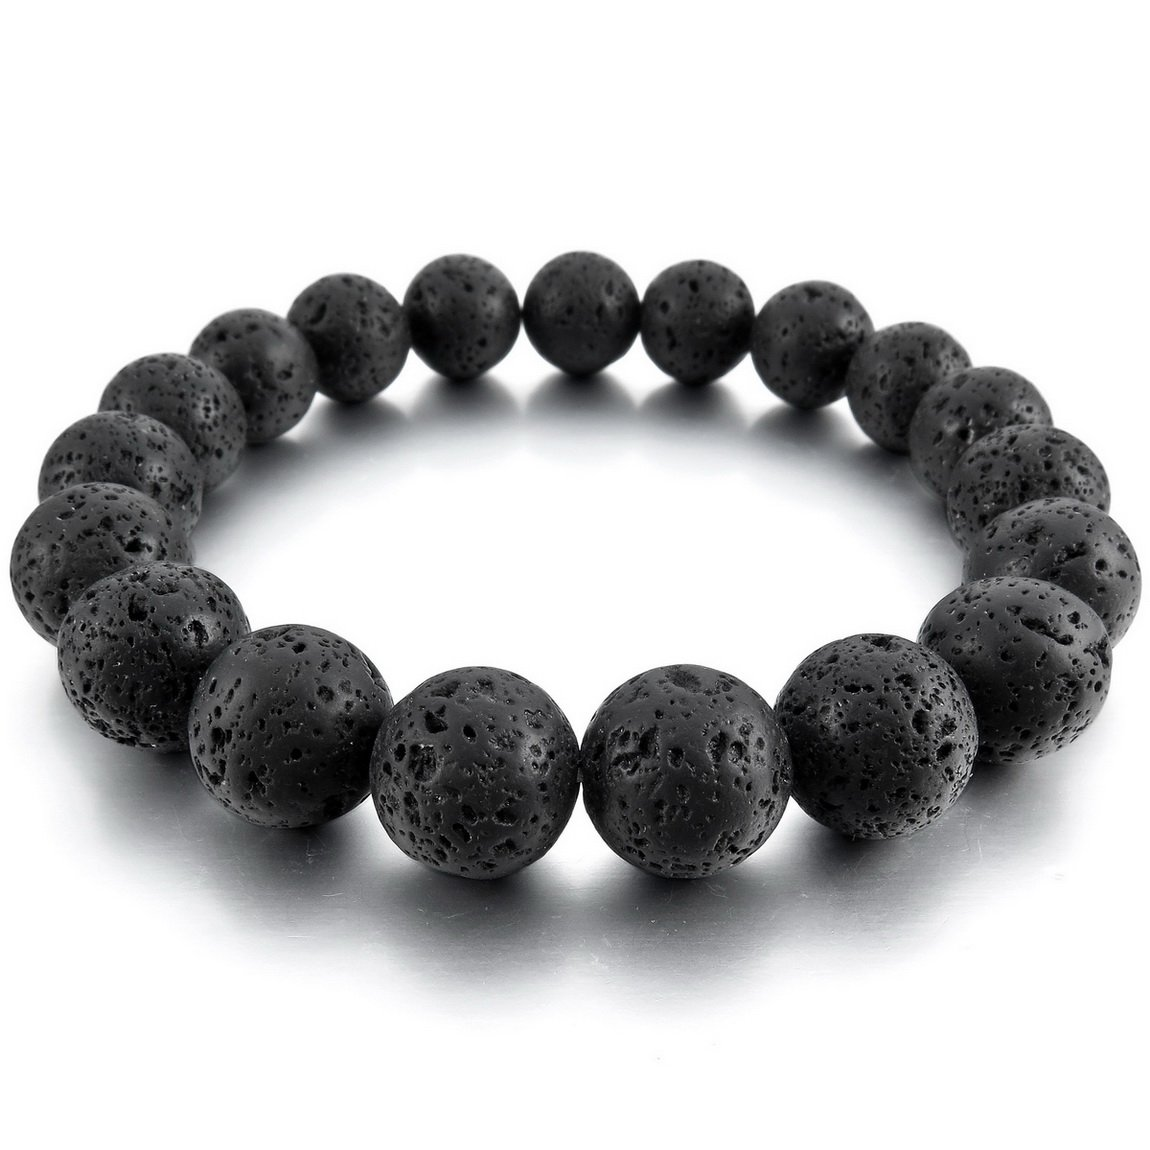 INBLUE Men, Women's 12mm Energy Bracelet Link Wrist Simulated Lava Rock Black Buddha Mala Bead INBLUE Jewelry mnb1082